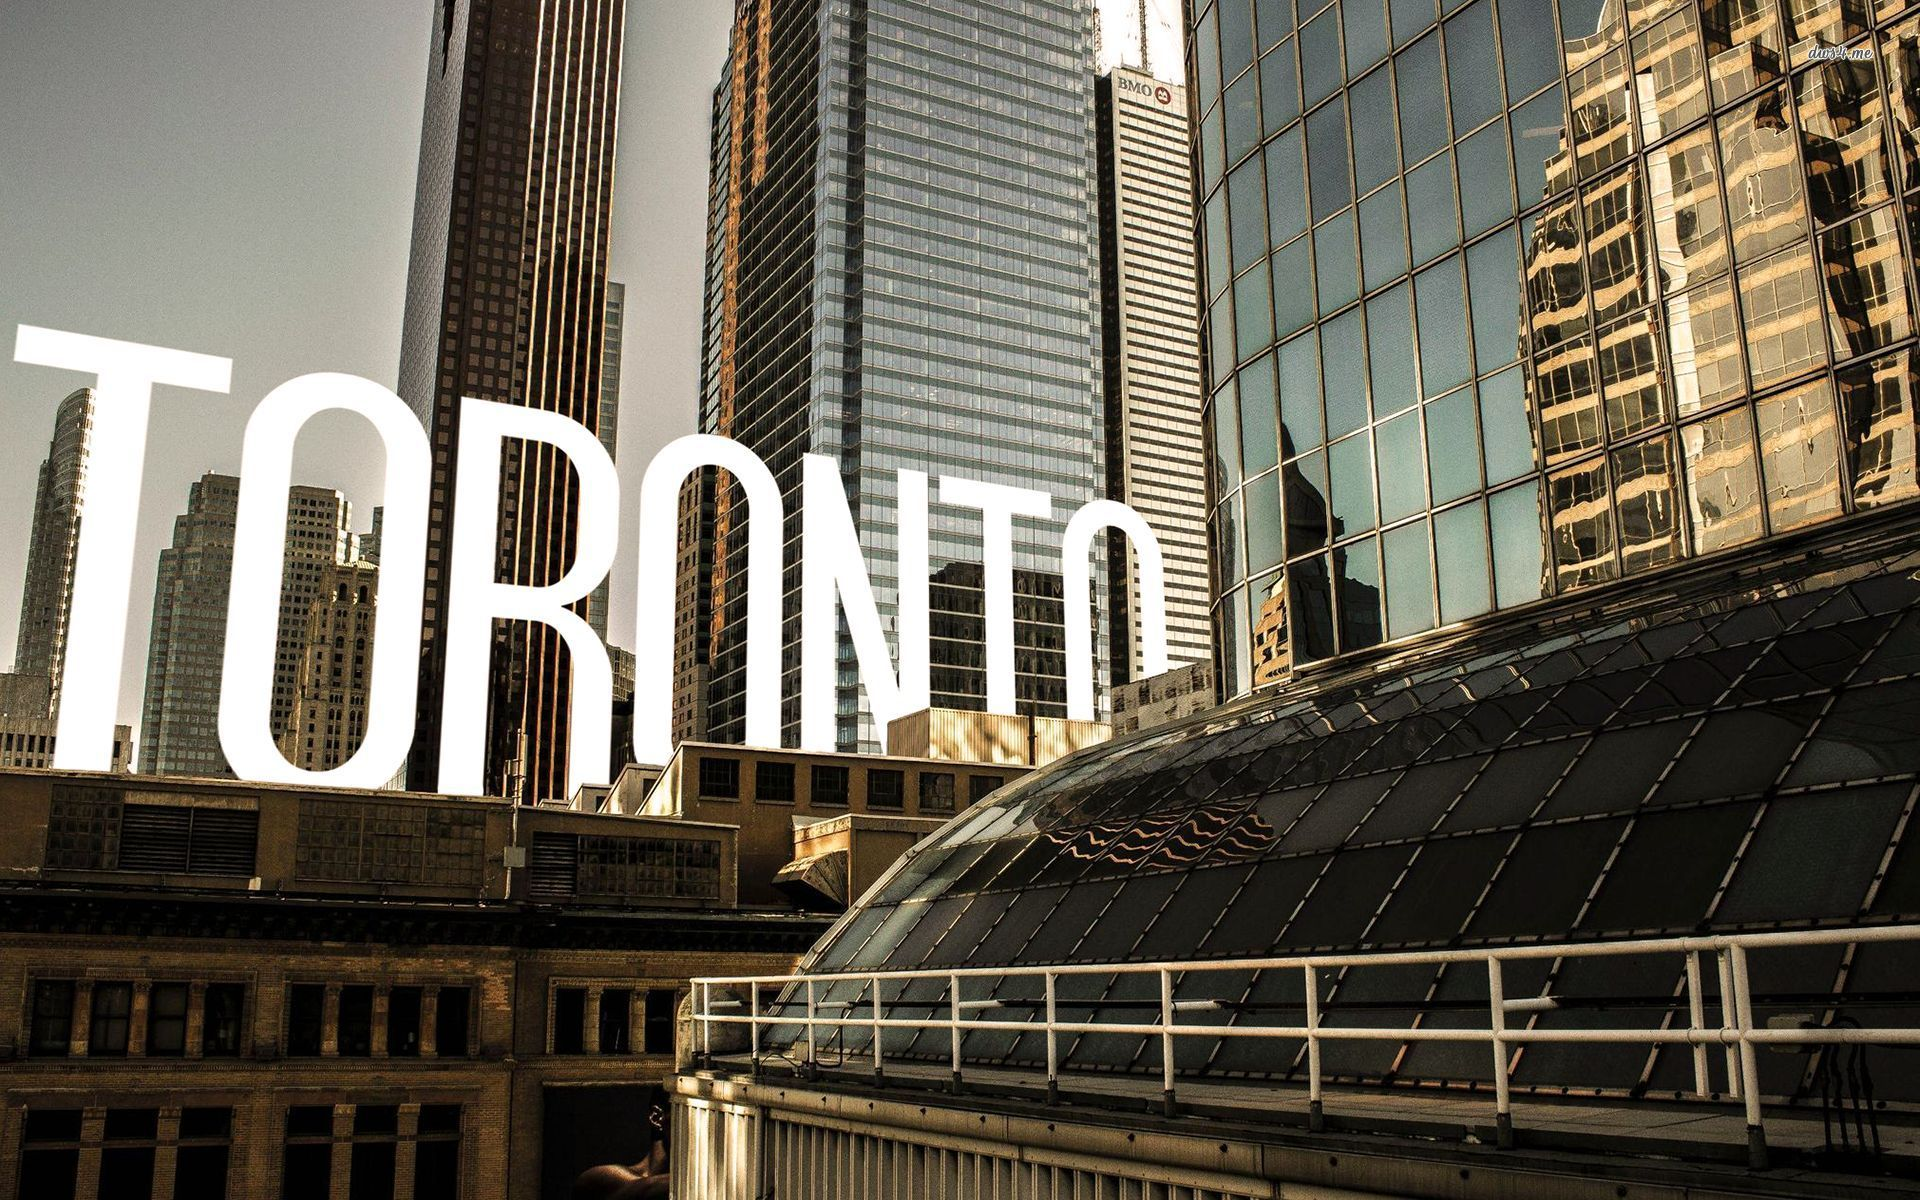 Toronto Wallpaper Mobile Is Cool Wallpapers